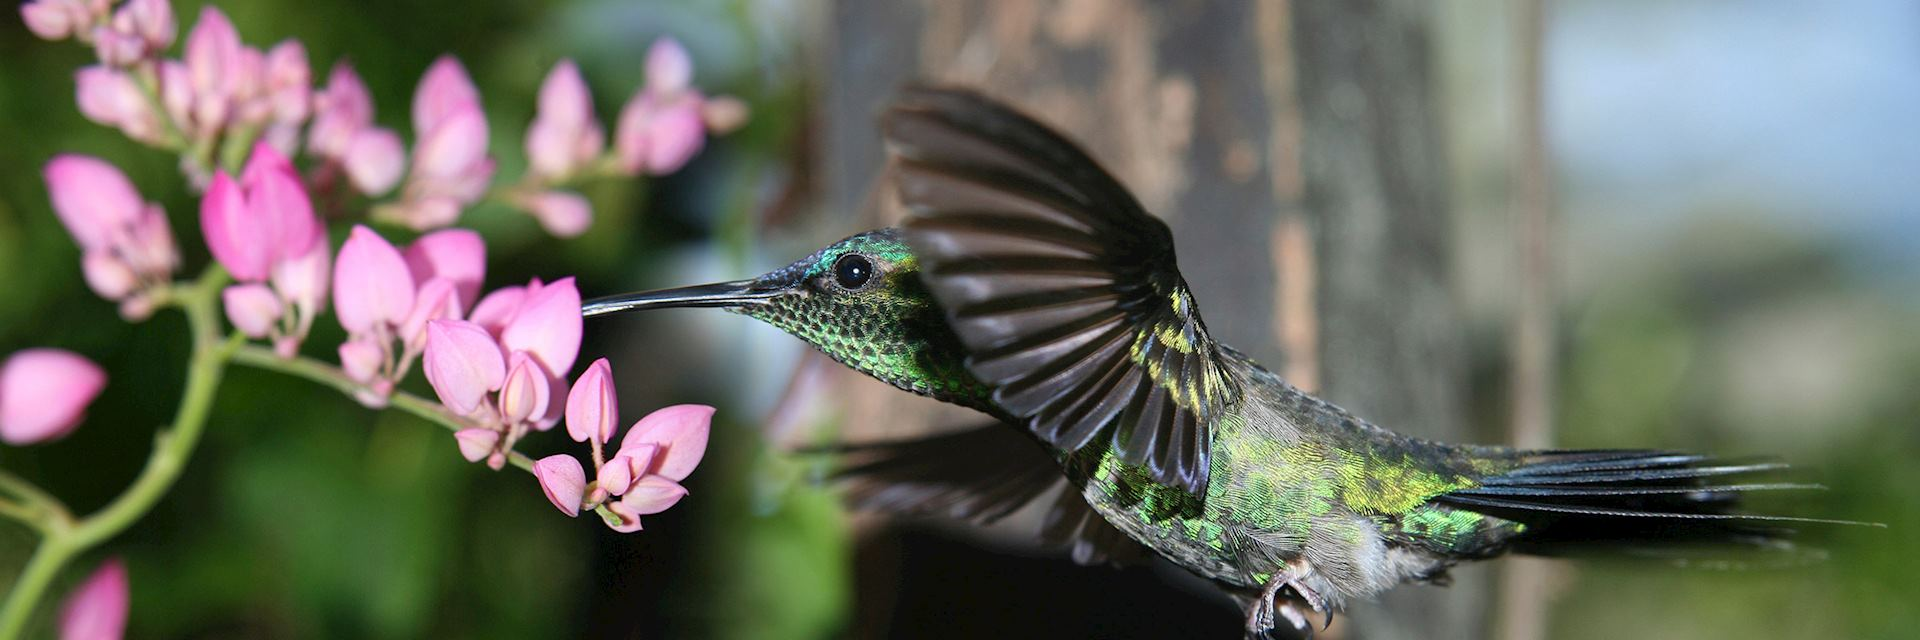 Hummingbird in flight, Paraguay